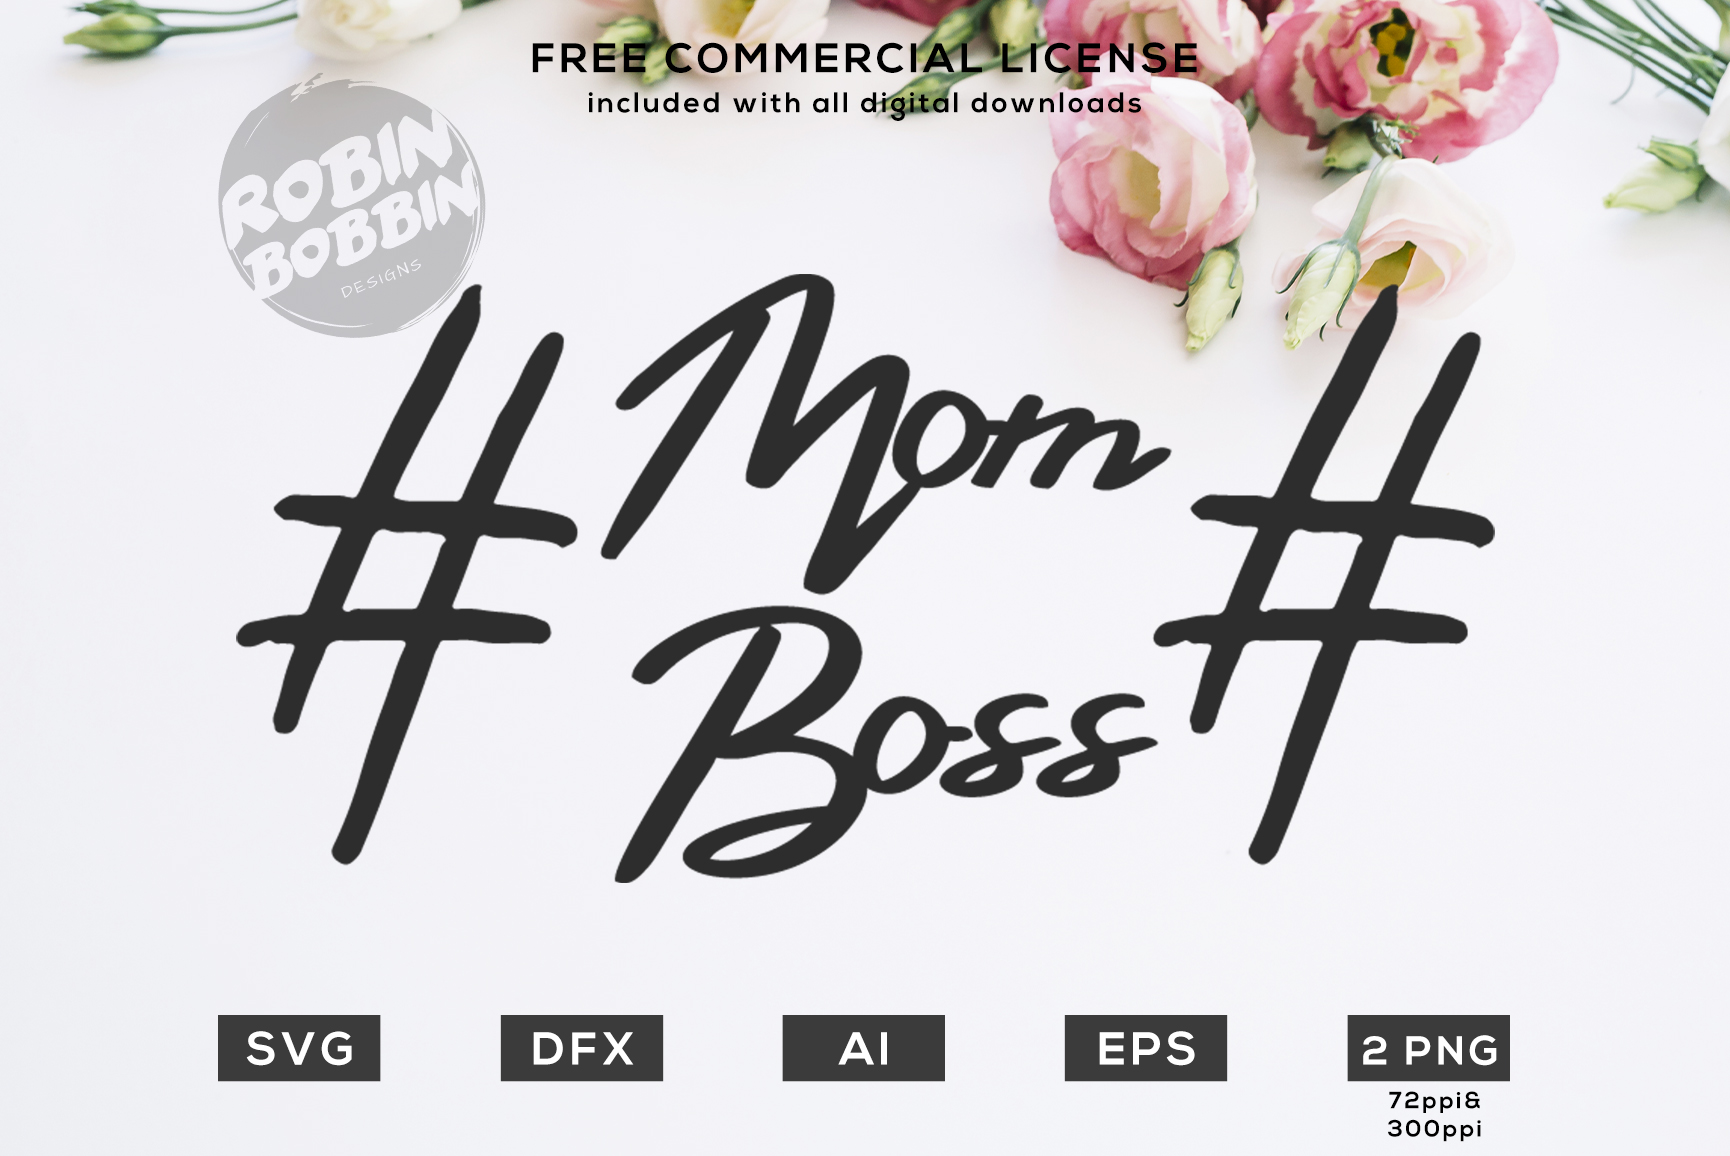 Mom Boss Design for T-Shirt, Hoodies, Mugs and more example image 1